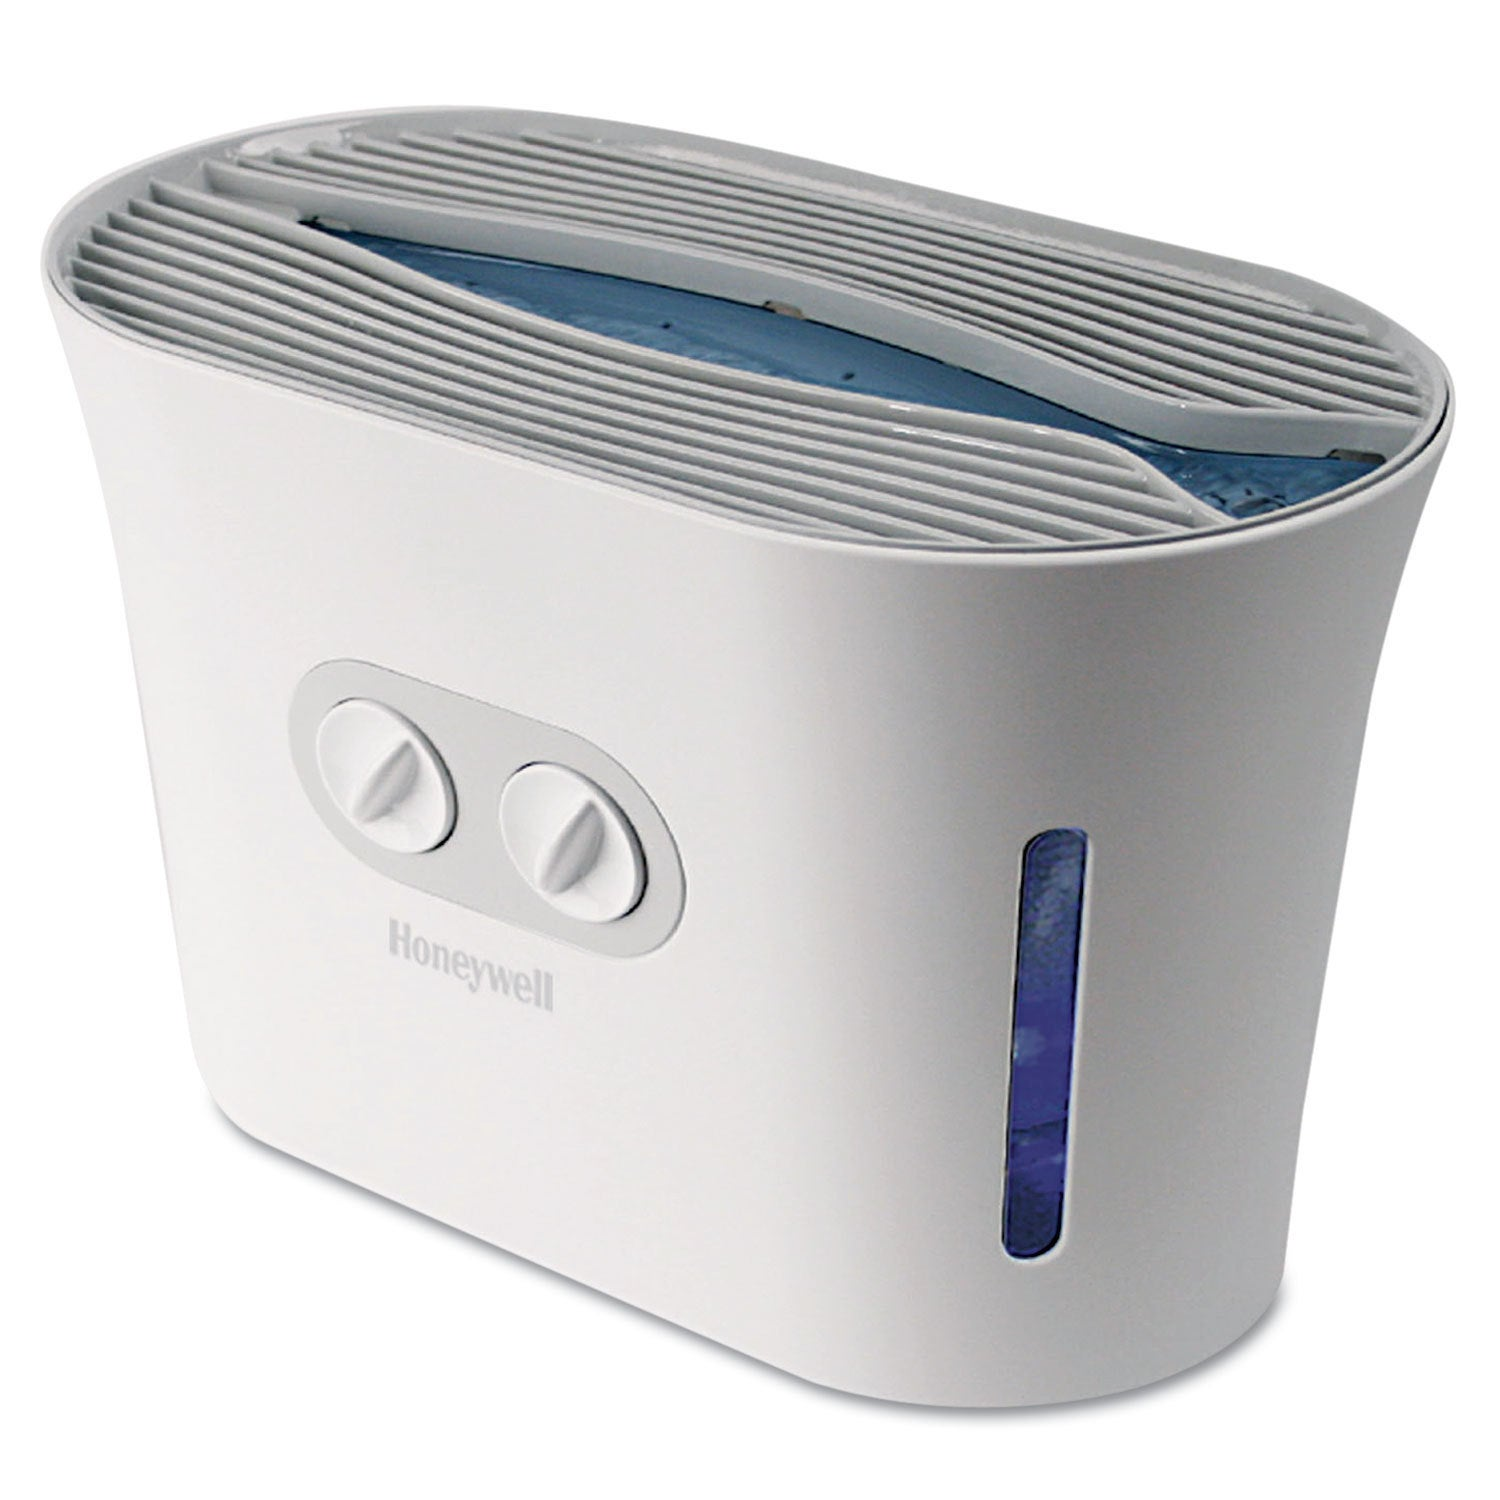 Honeywell Easy-Care Top Fill Cool Mist Humidifier White 1...